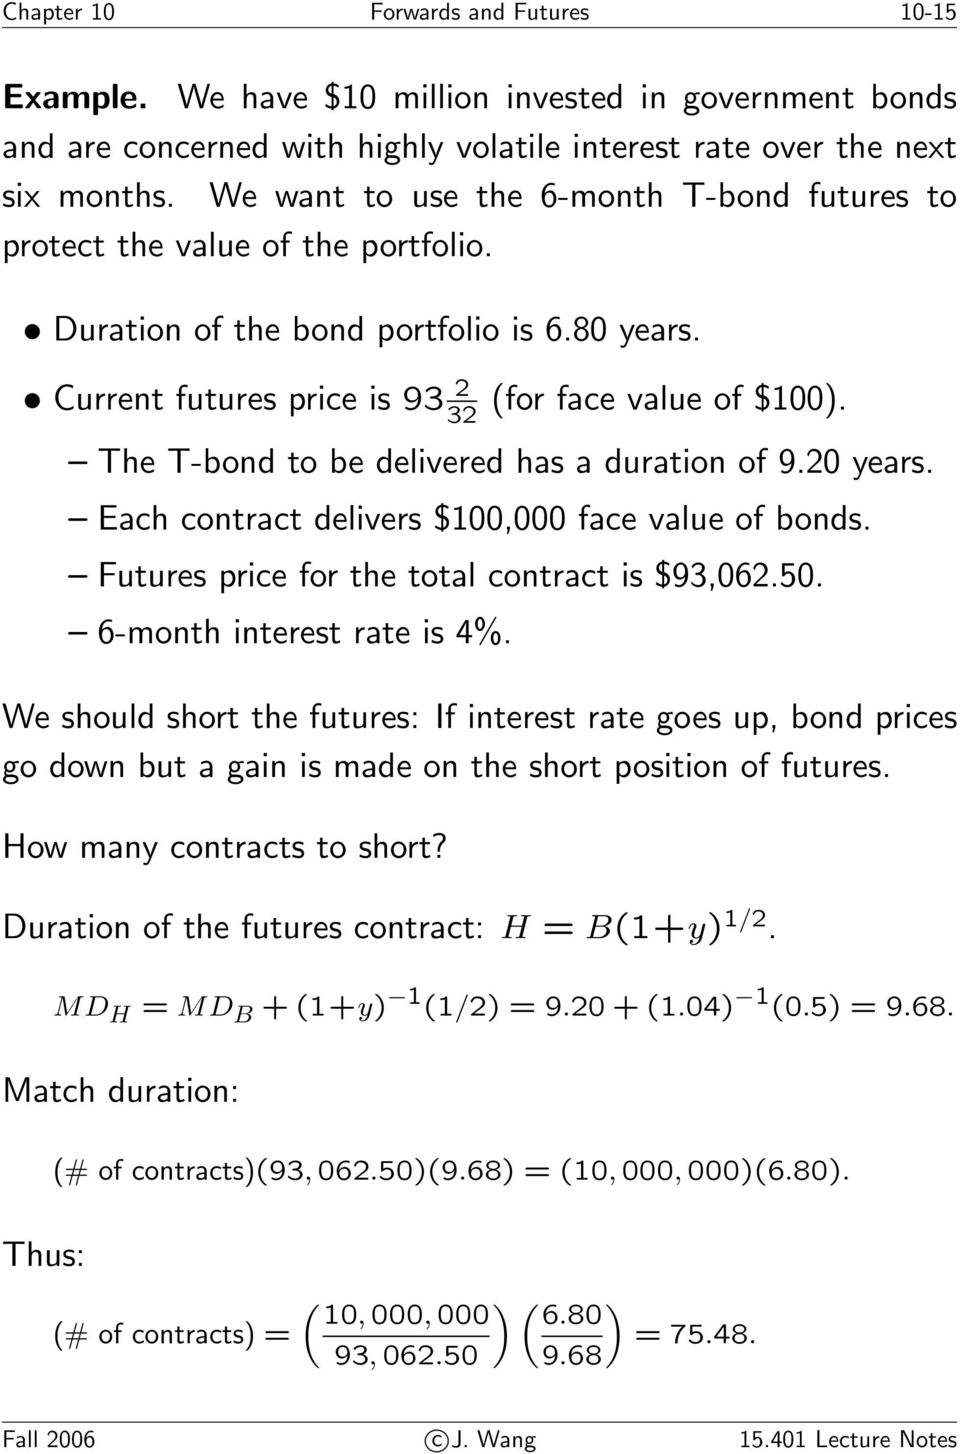 The T-bond to be delivered has a duration of 9.20 years. Each contract delivers $100,000 face value of bonds. Futures price for the total contract is $93,062.50. 6-month interest rate is 4%.